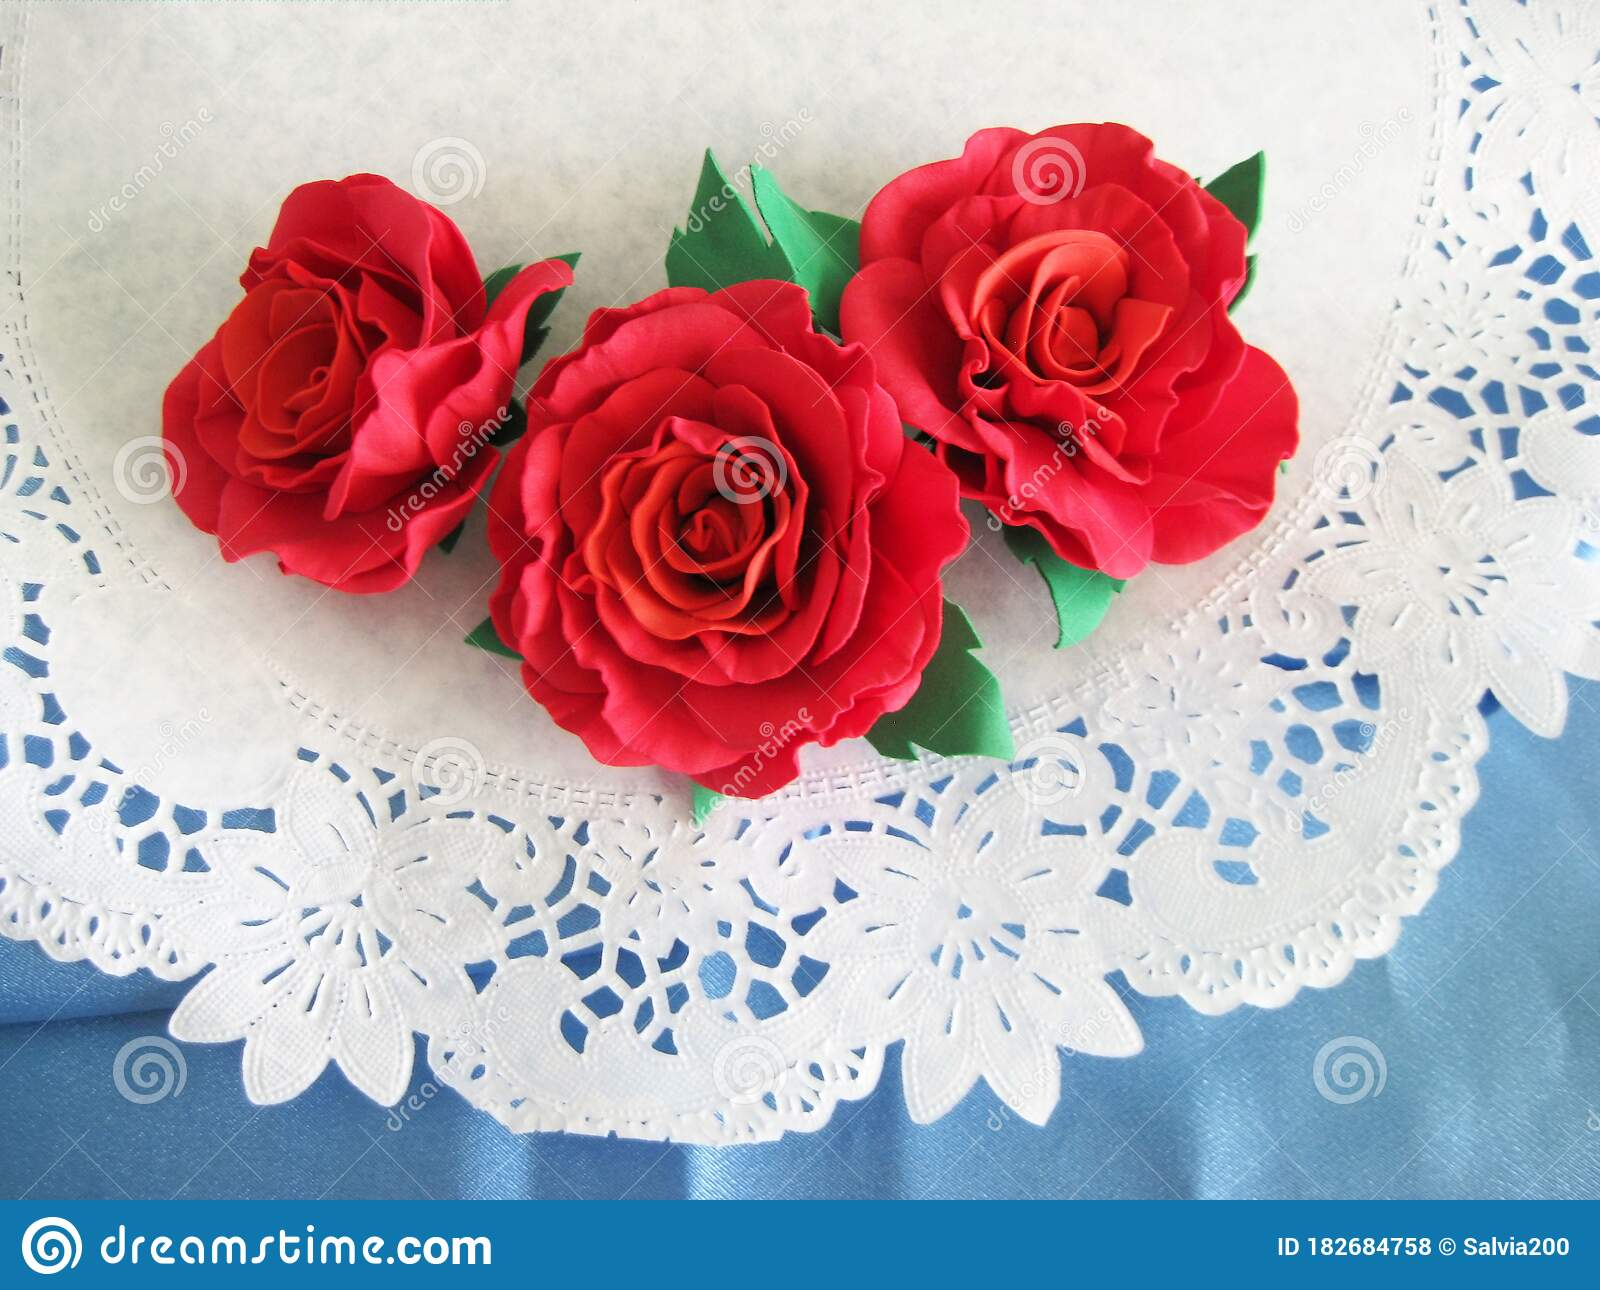 Home And Comfort Homemade Crafts On A White Napkin Roses Stock Photo Image Of Wallpaper Card 182684758